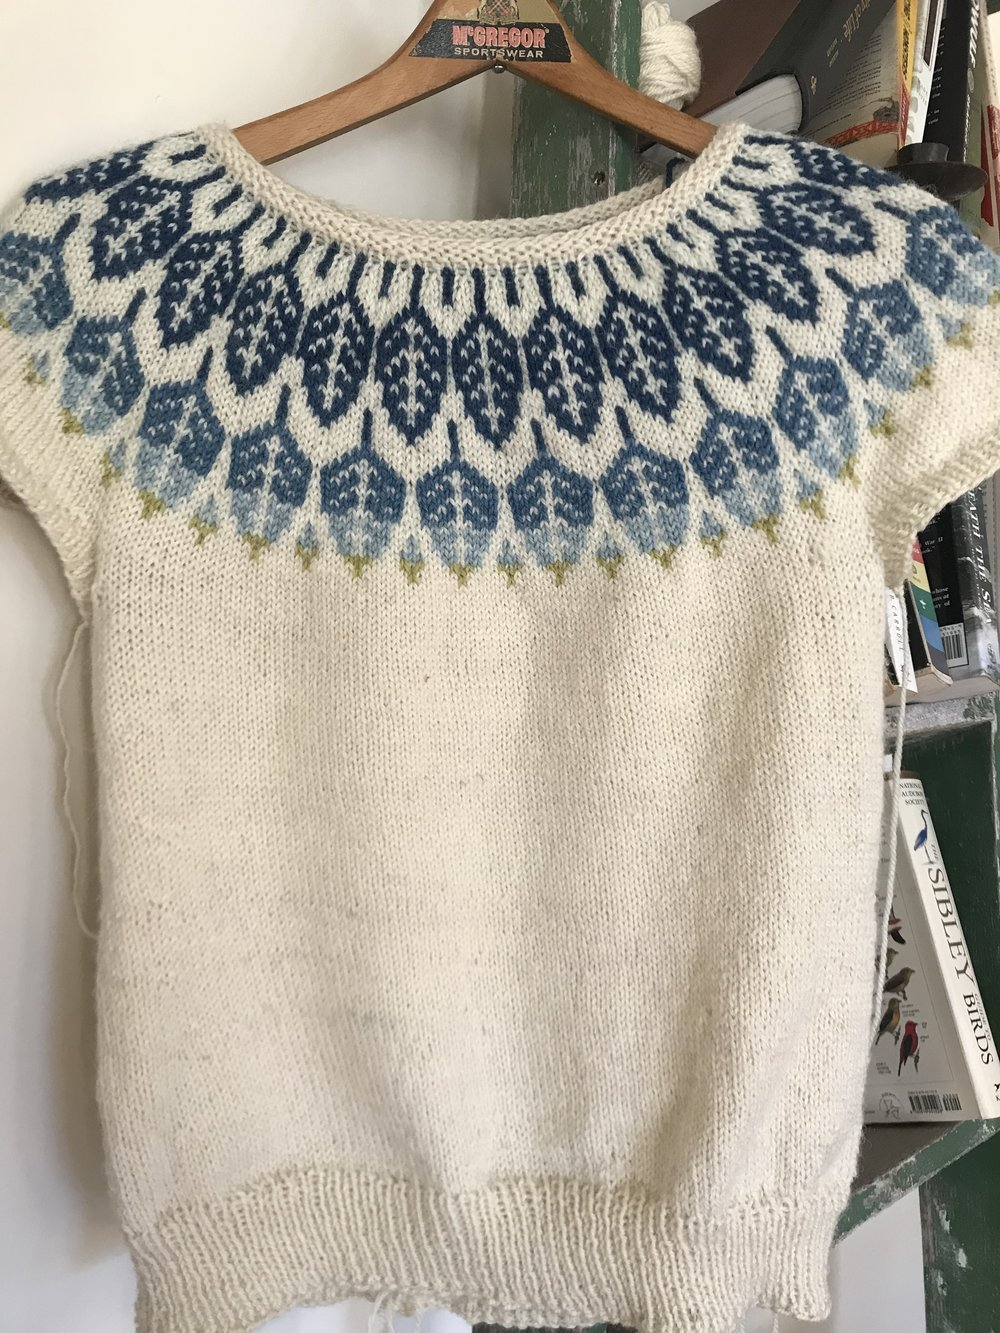 My short sleeved  Arboreal  (please excuse the untucked ends) knit with Cream as the main color, and Delft, Summer Sky, Glacier Bay, and Lichen as the yoke (yoke colors available as a kit).